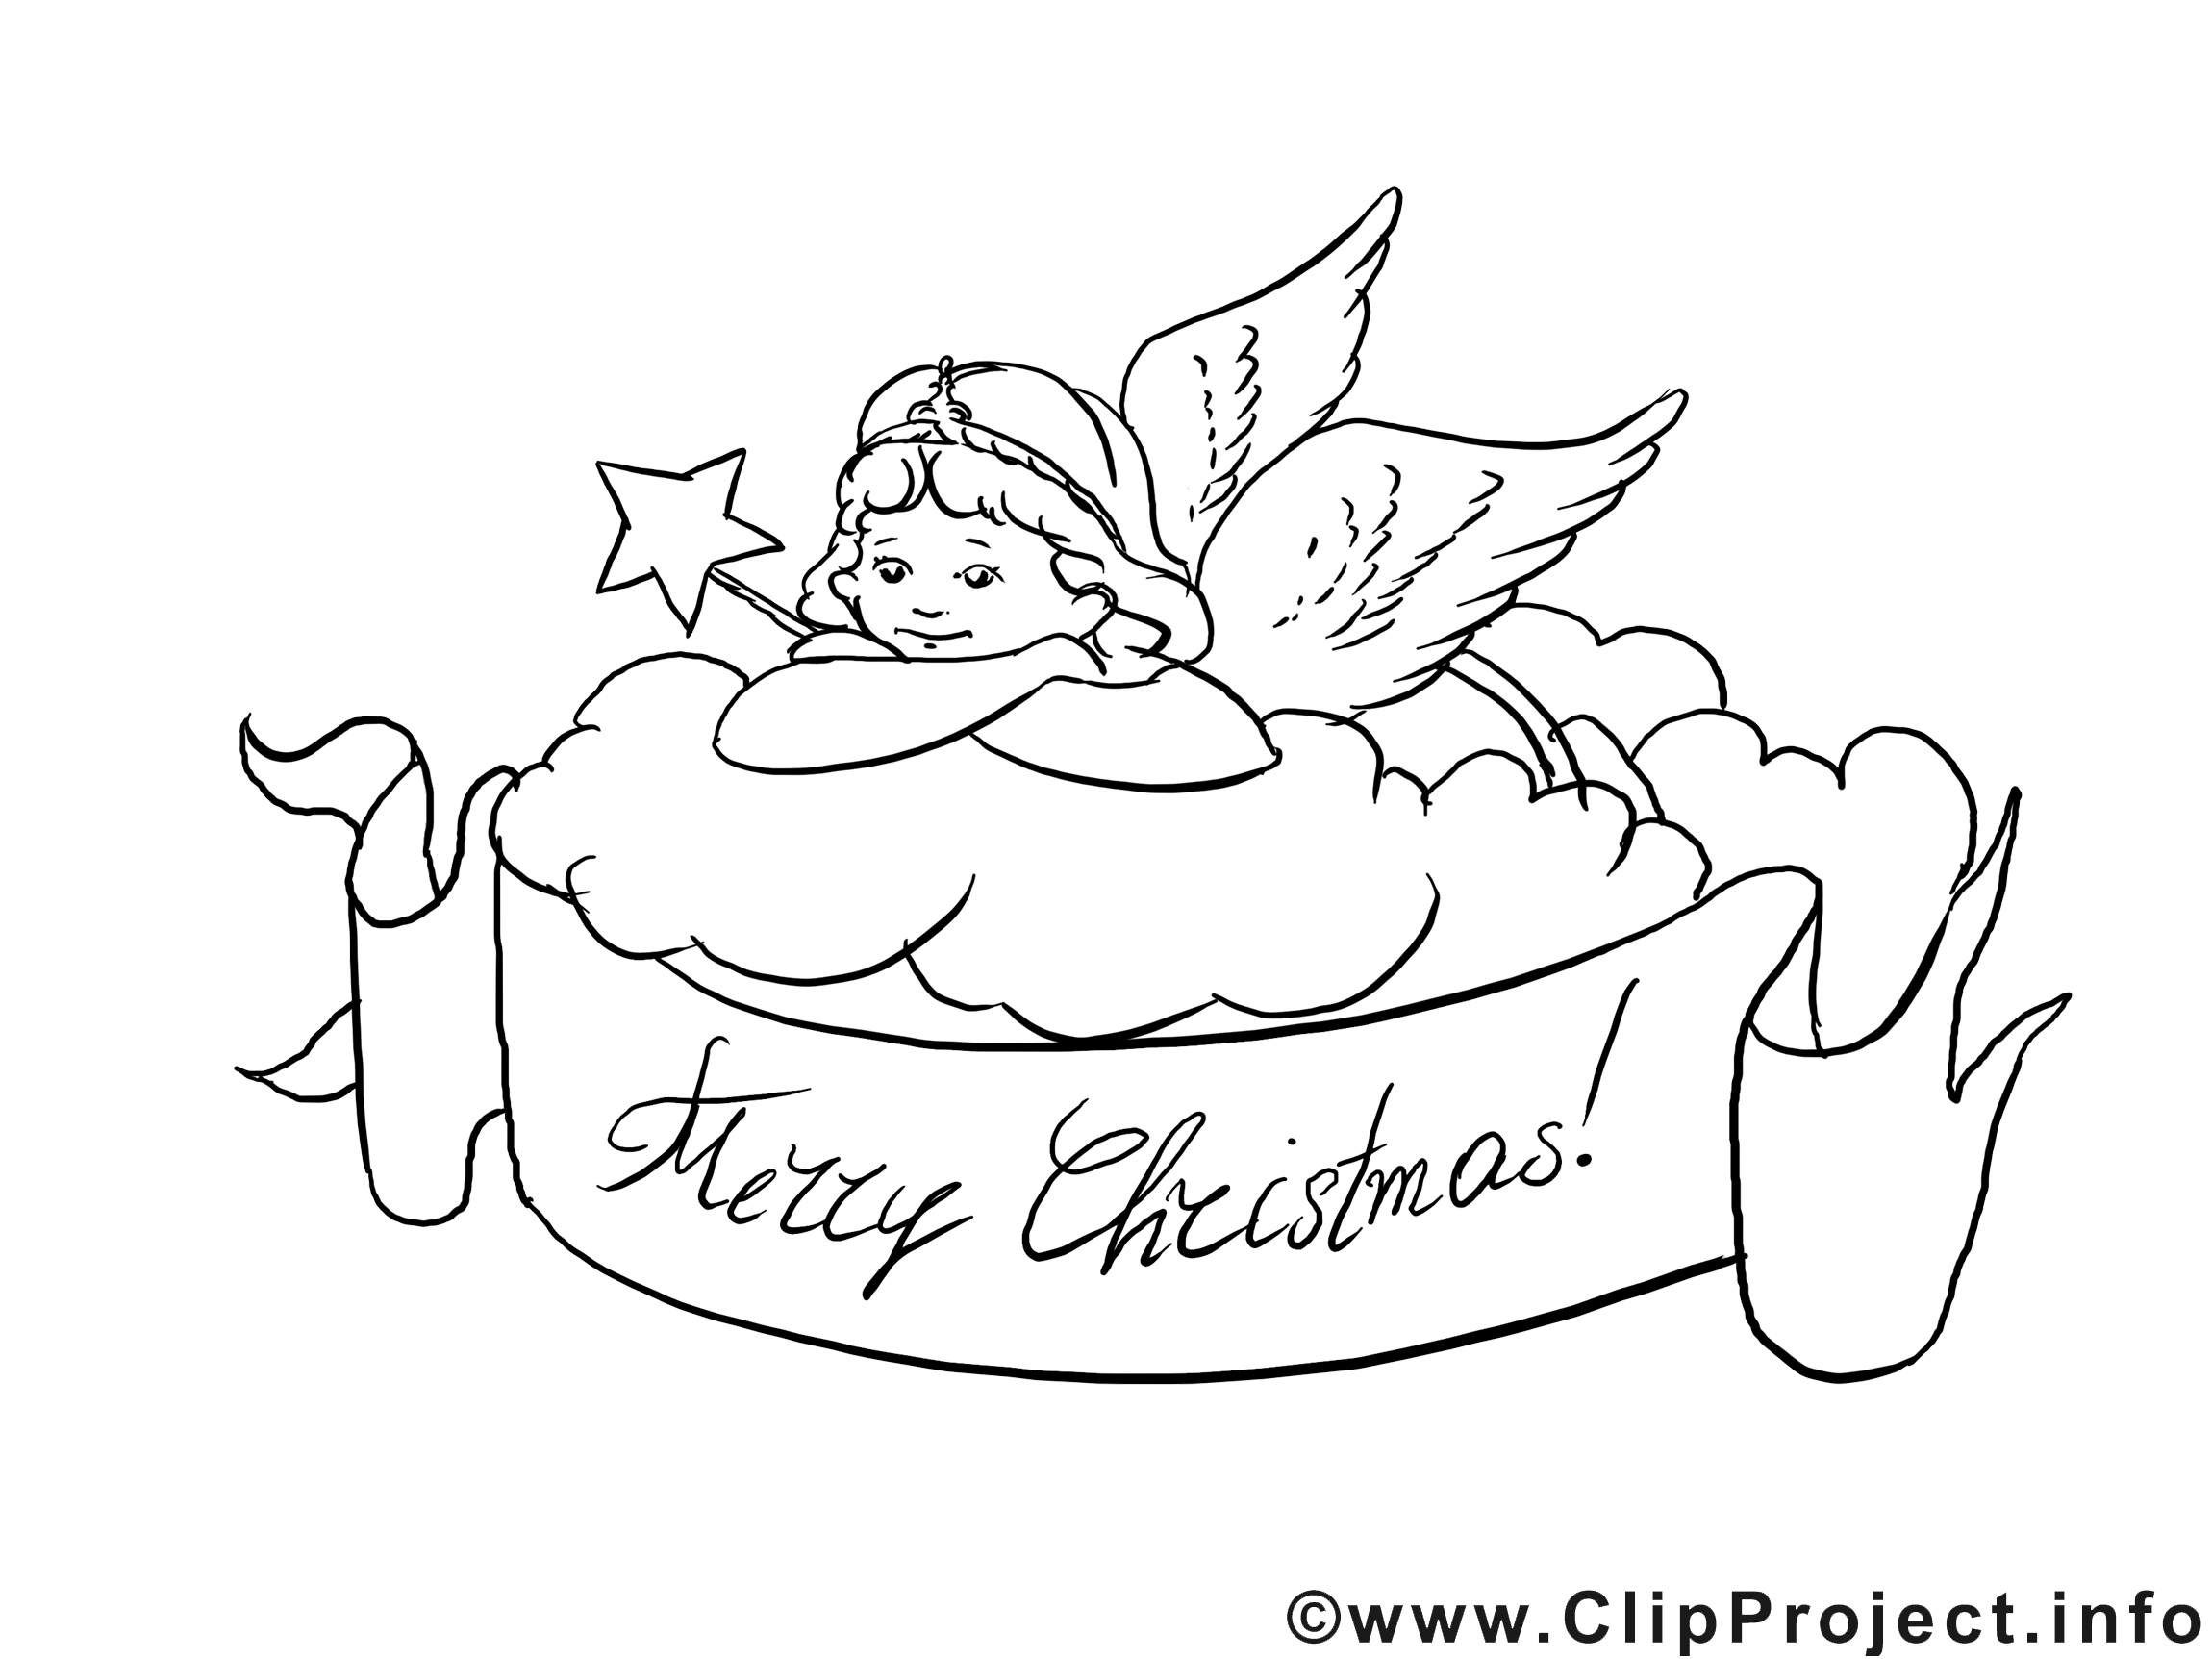 Merry Christmas Coloring Page  Weihnachtsmalvorlagen